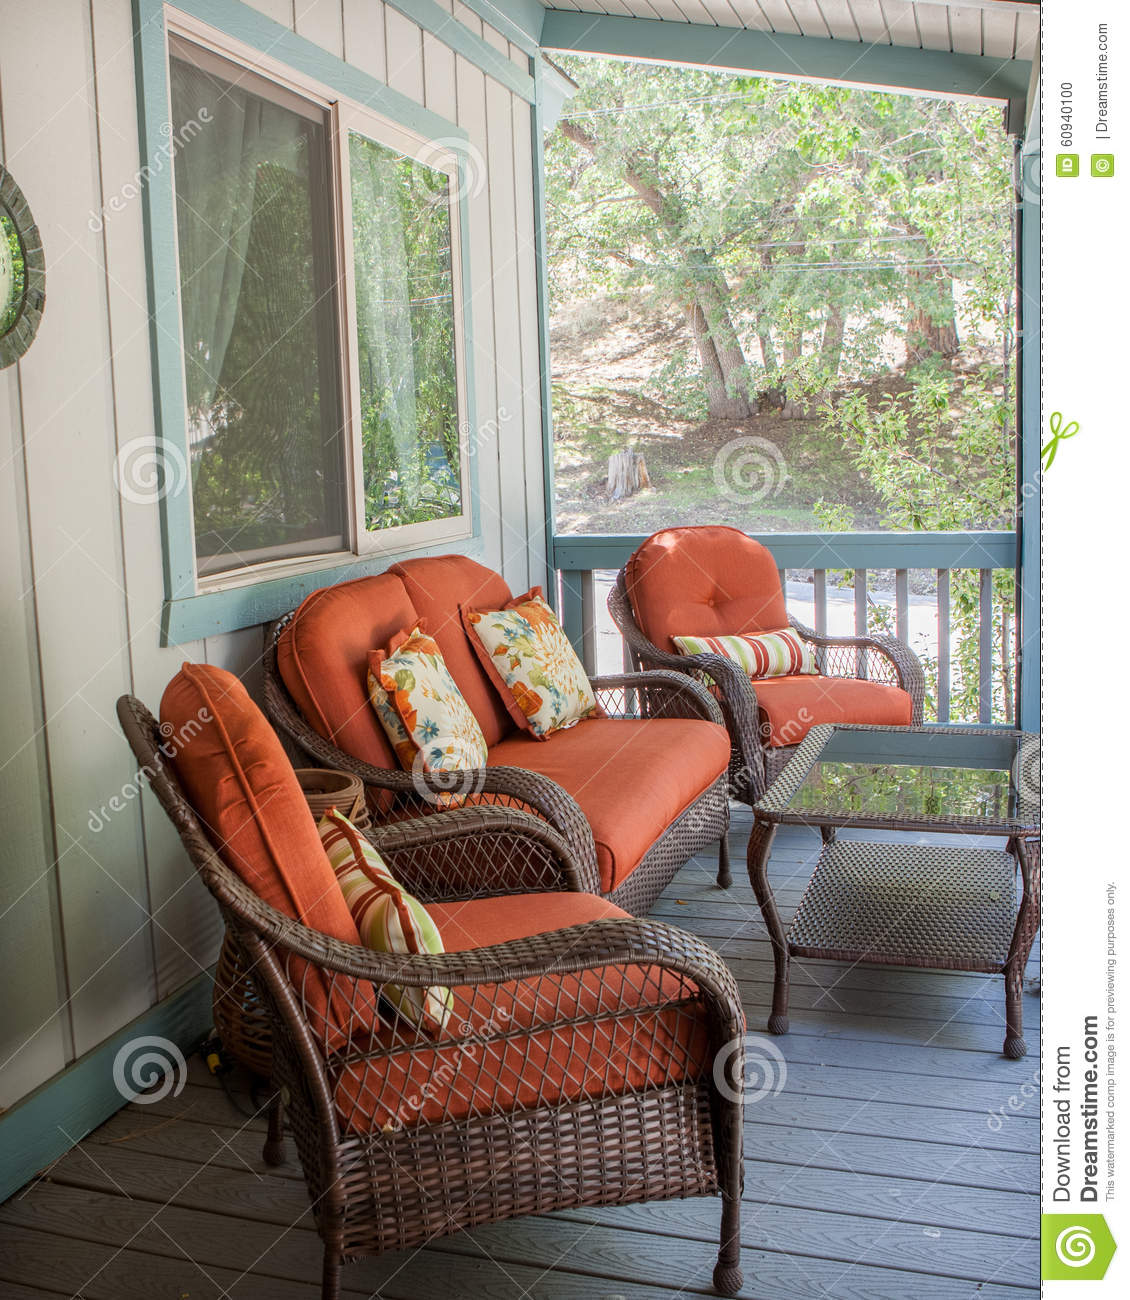 orange outdoor chairs bouncy chair target burnt patio furniture outside on the deck stock